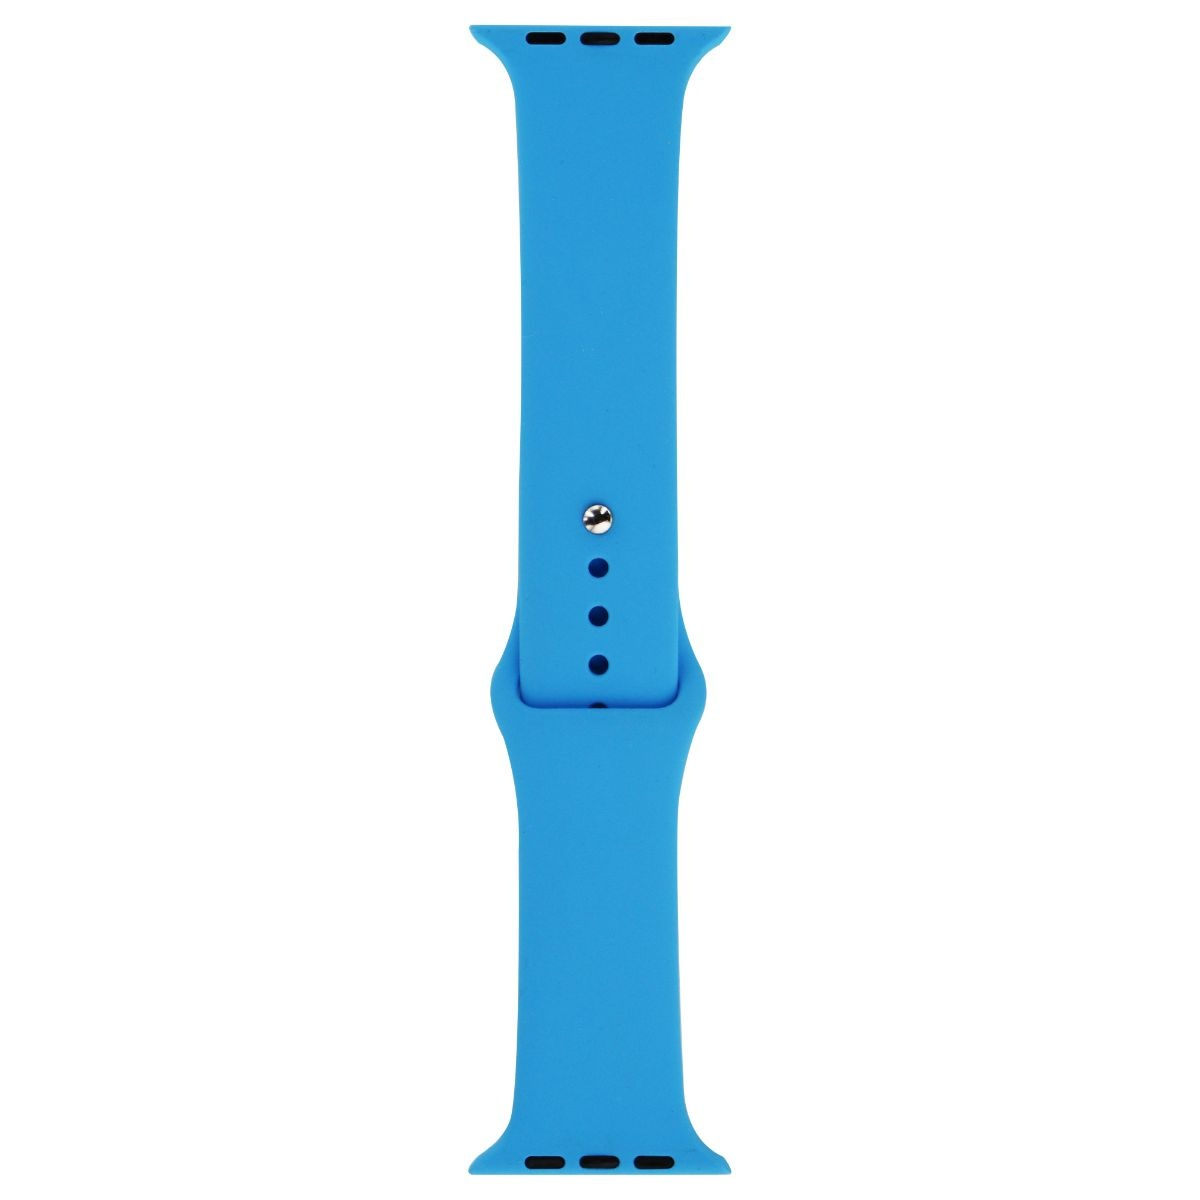 Sports Band Replacement Watch Band for the Apple Watch 42mm - Blue